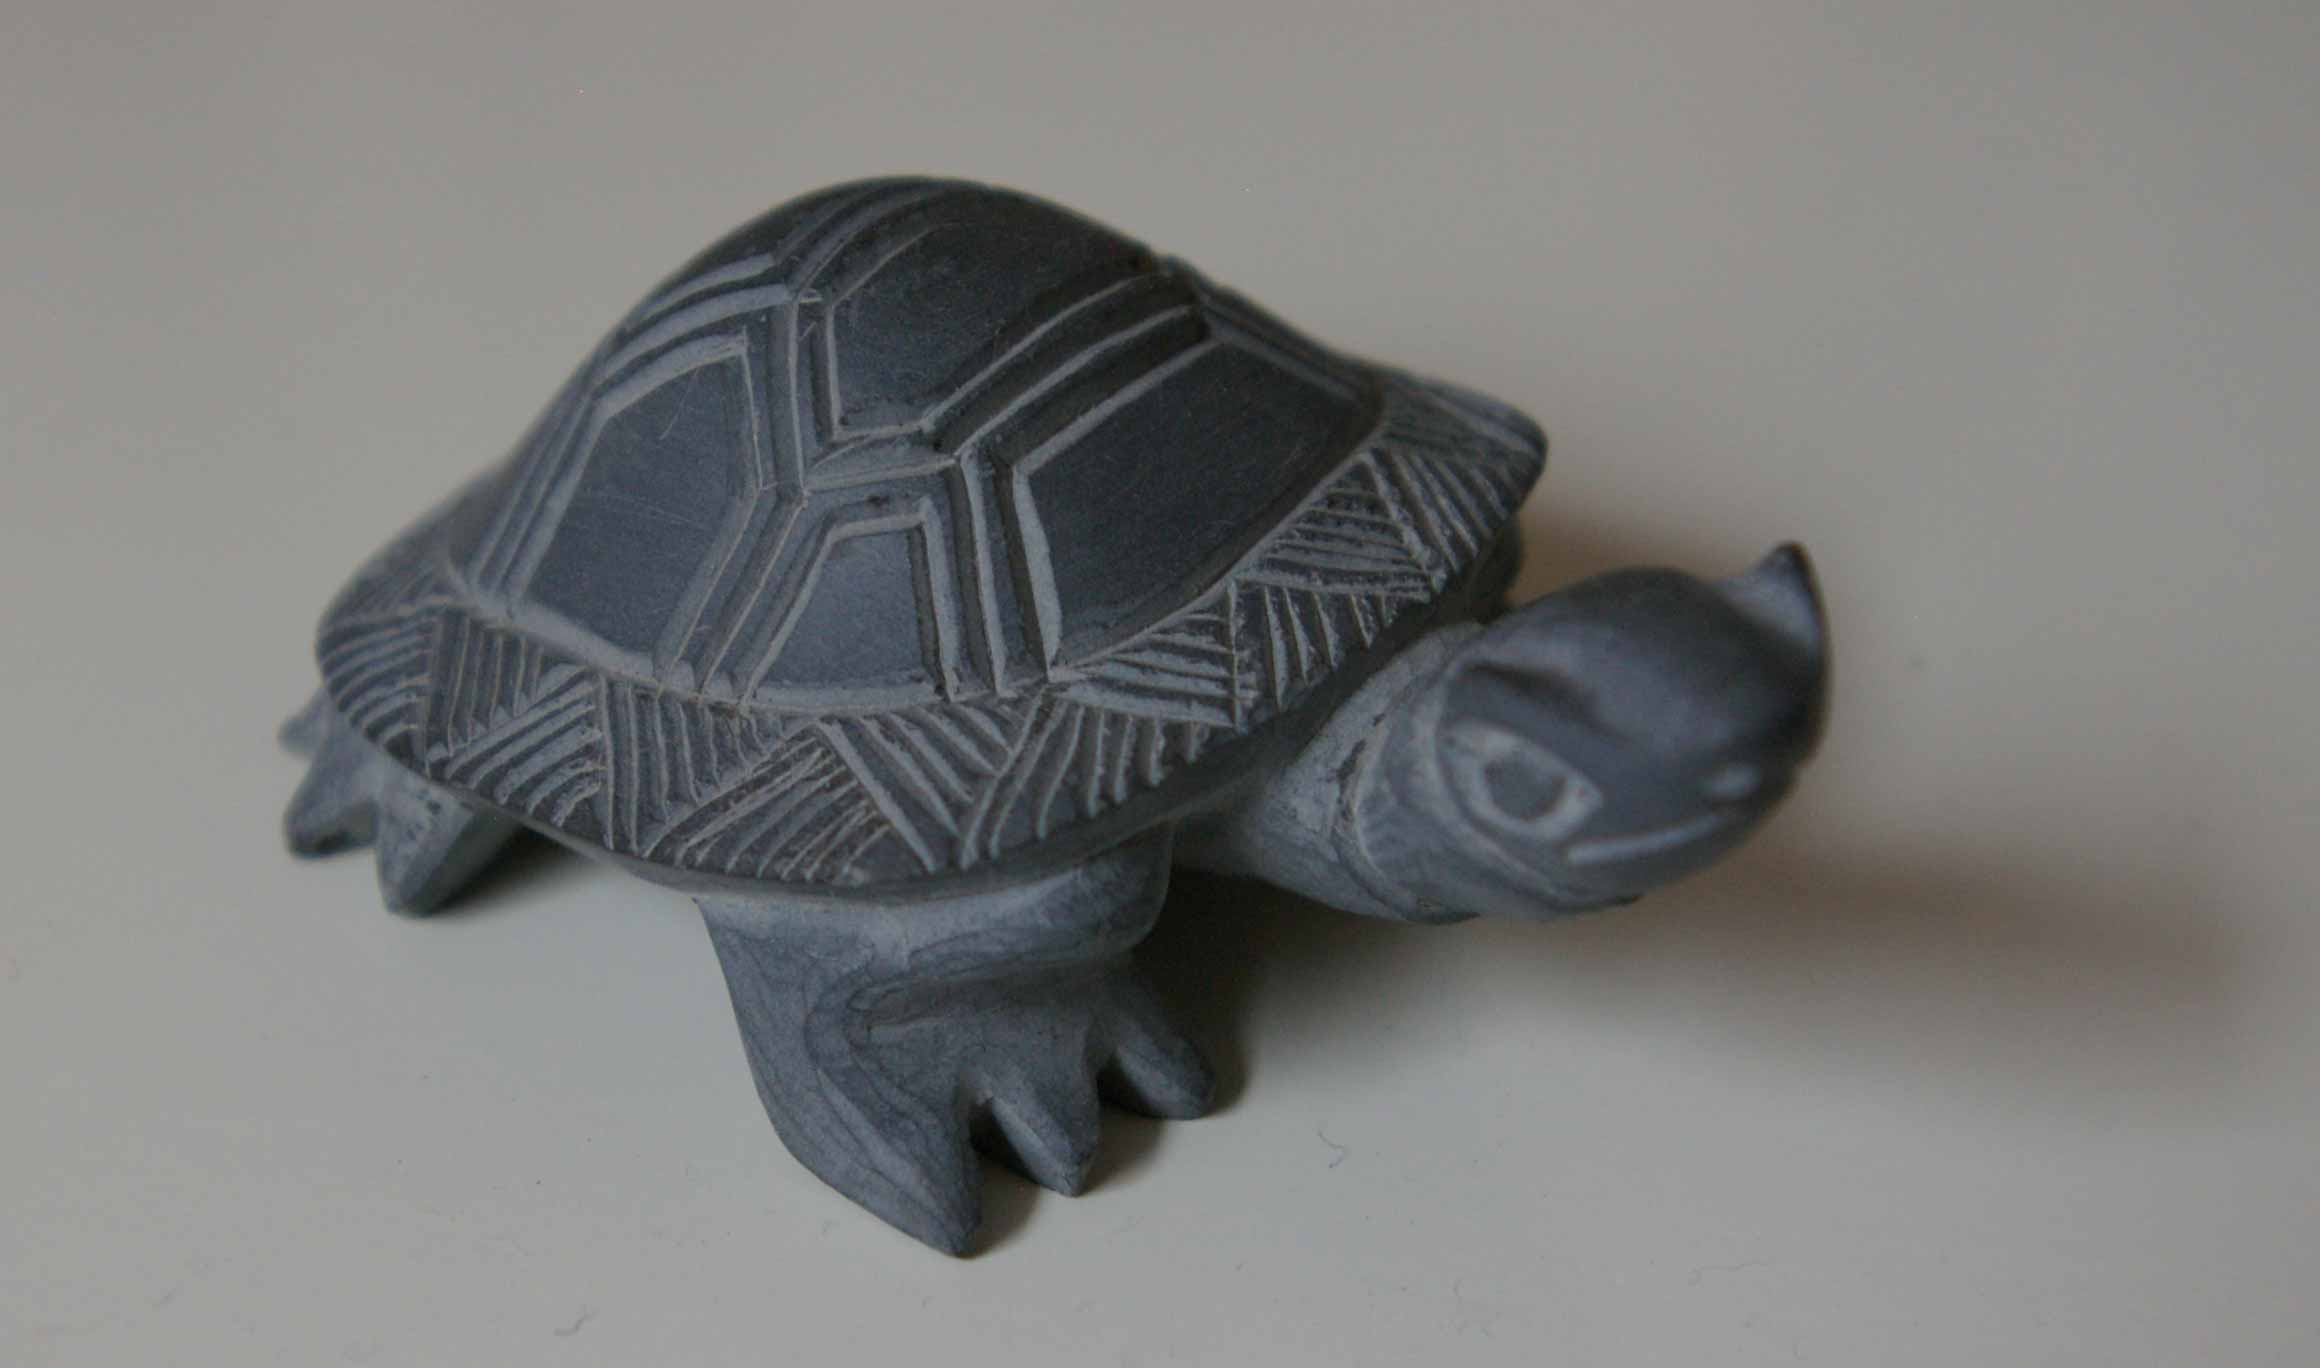 Turtles printable templates soap carving year of clean water